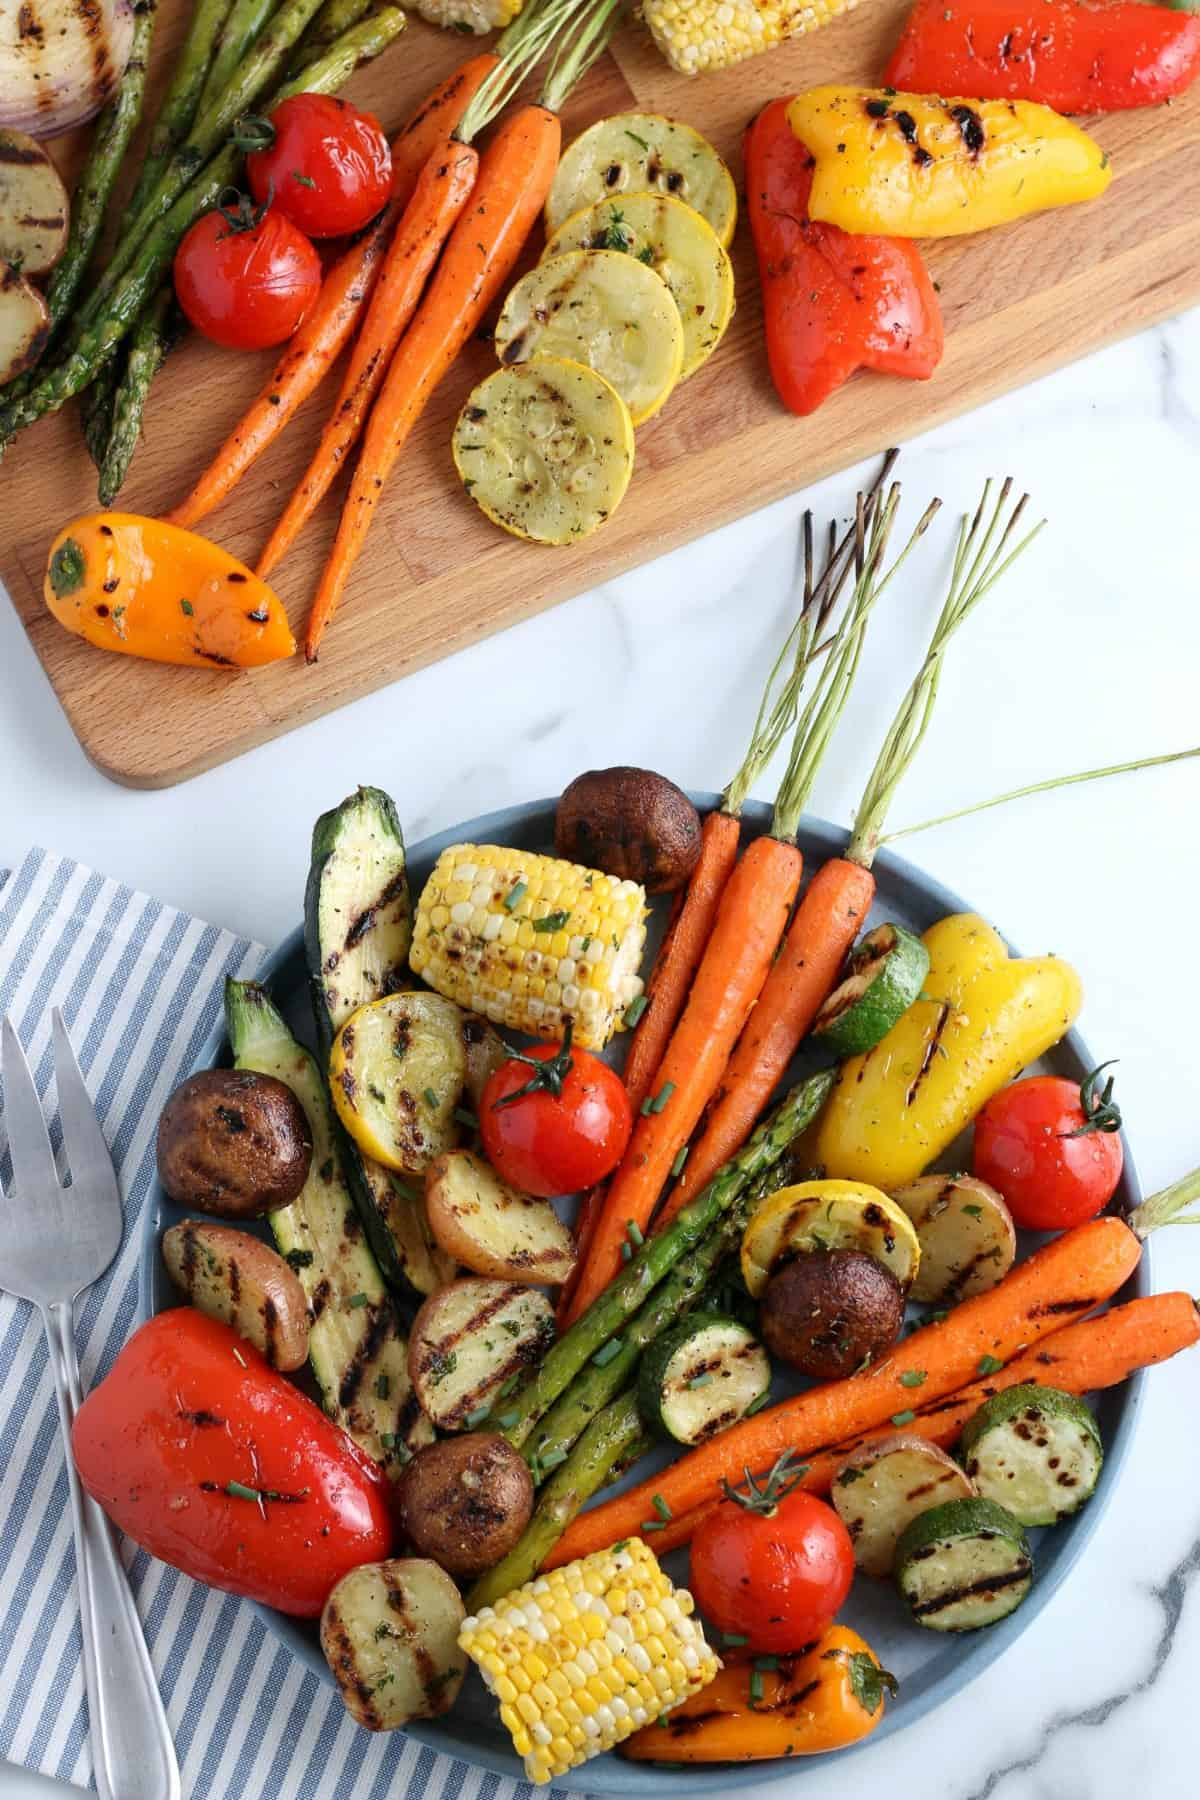 Overhead view of whole and sliced grilled vegetables mixed together on a large serving platter.